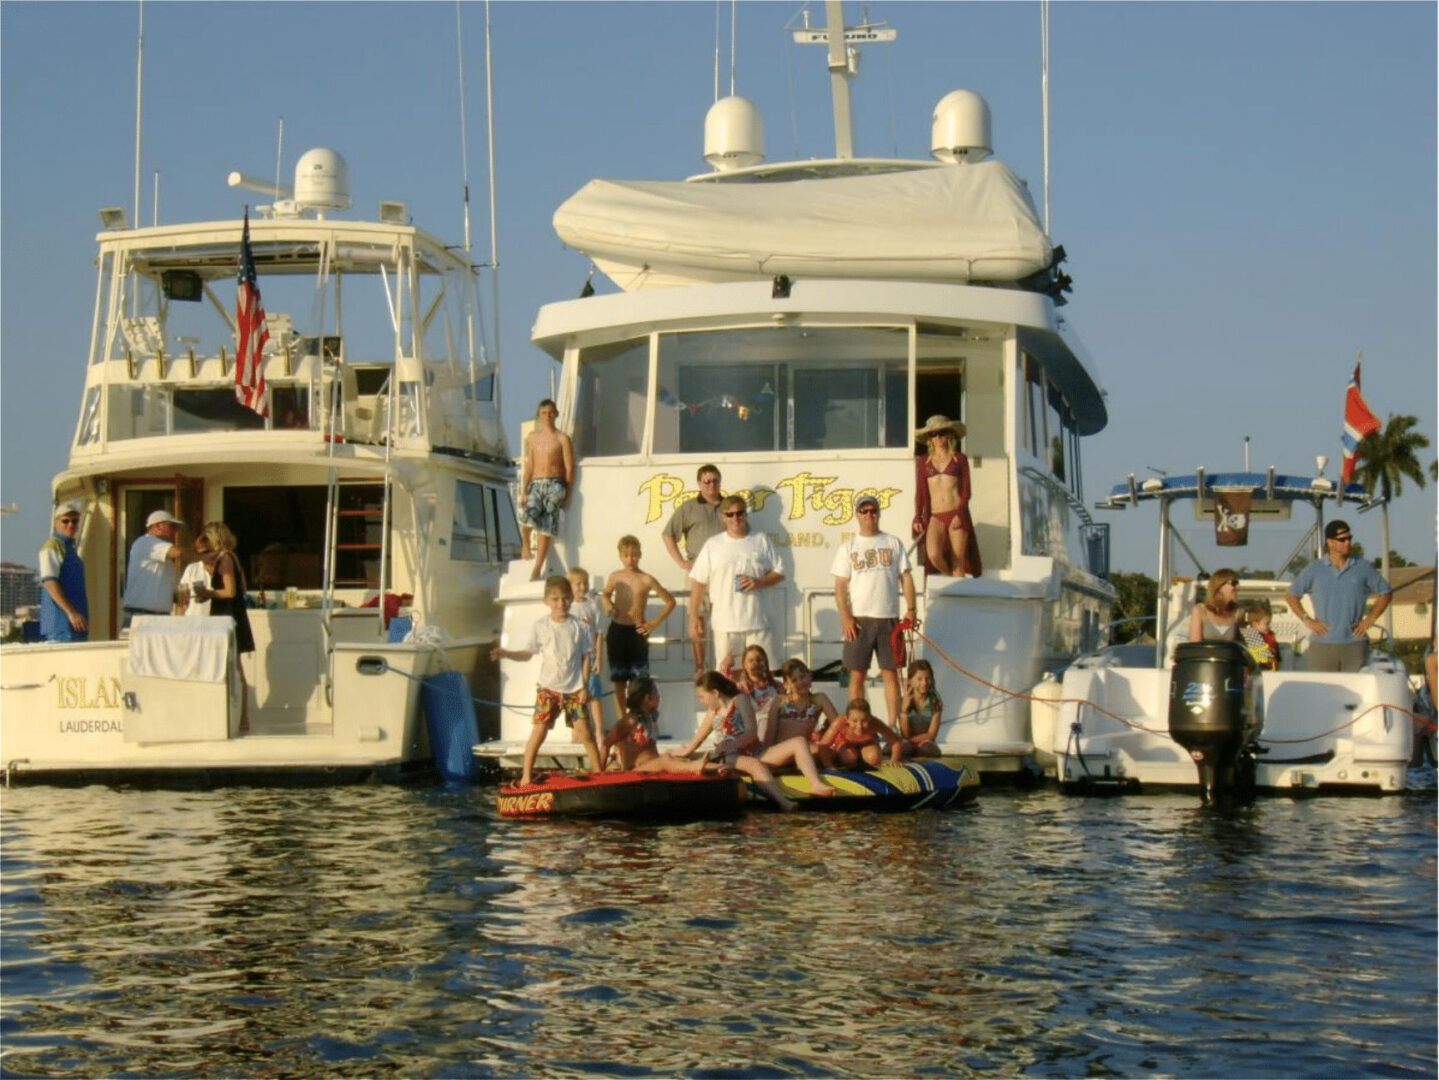 Families on yachts